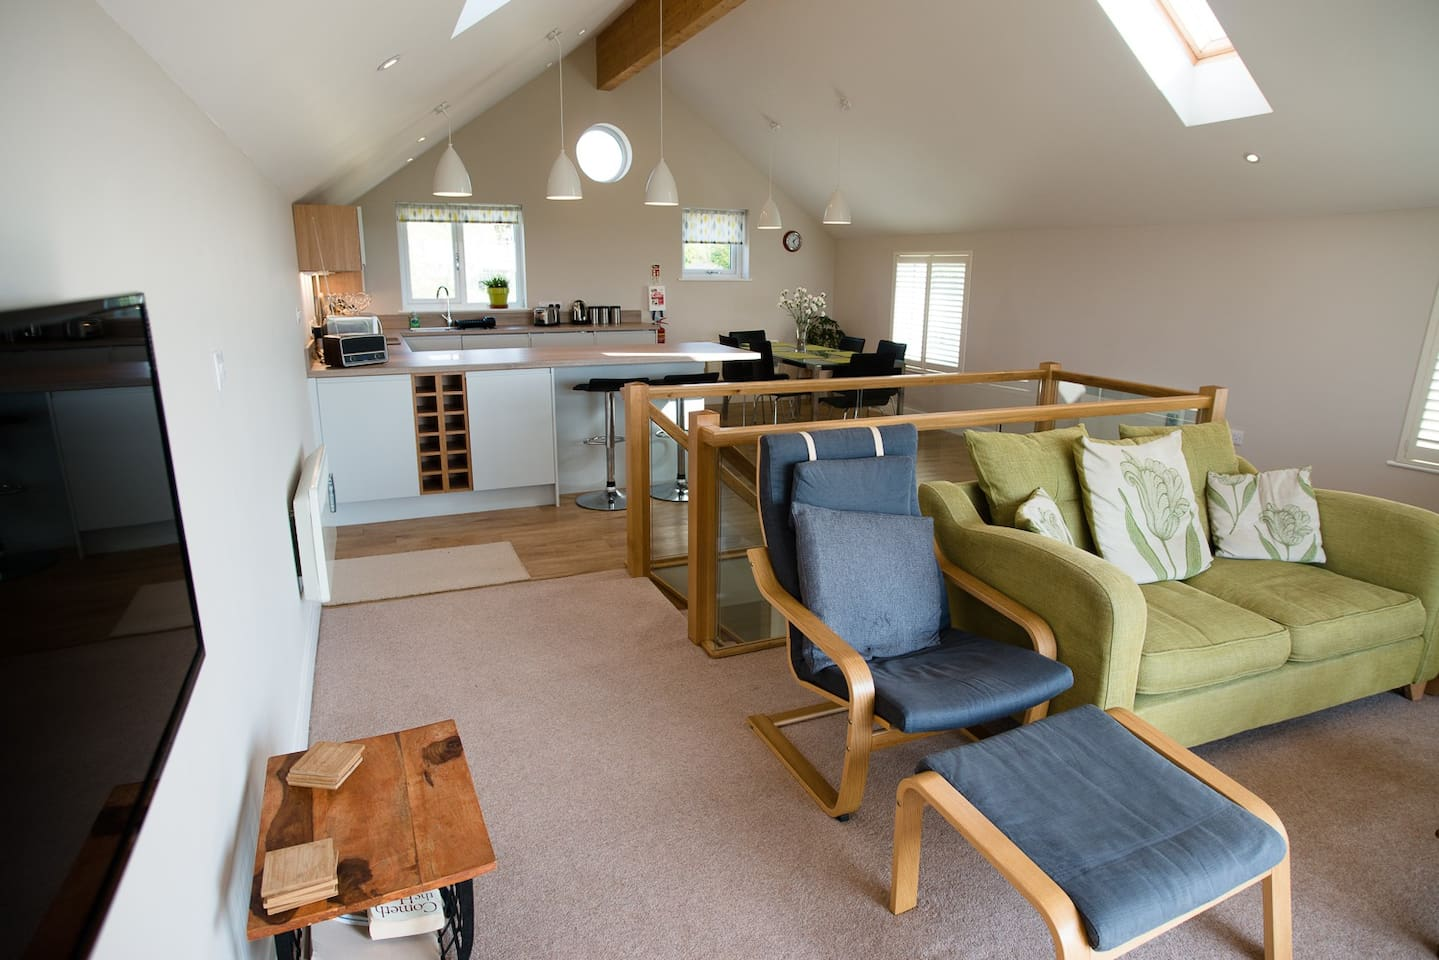 The eating and living area